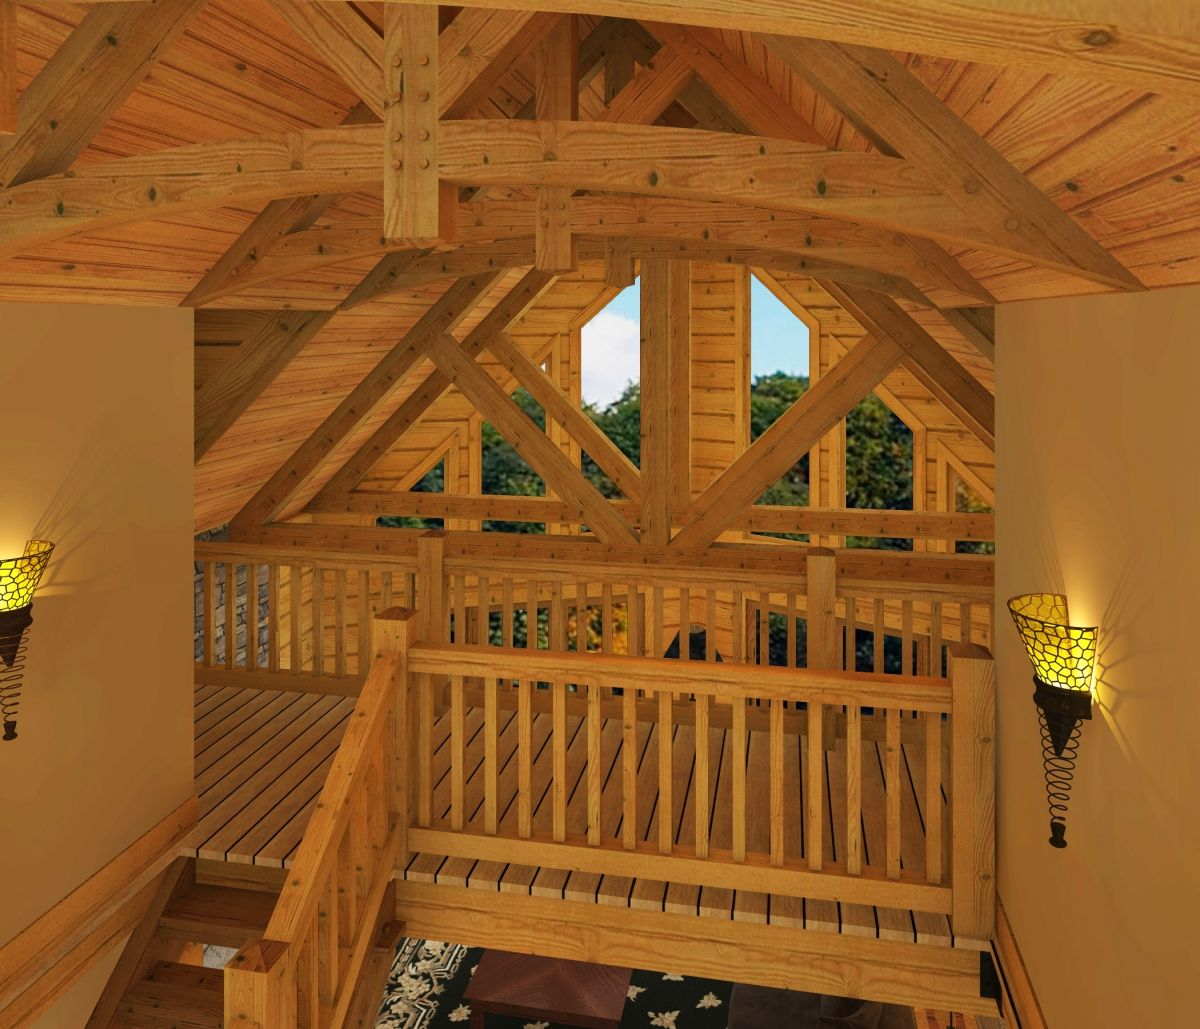 timber frame homes and floor plans southland log homes ideas a frame house interior